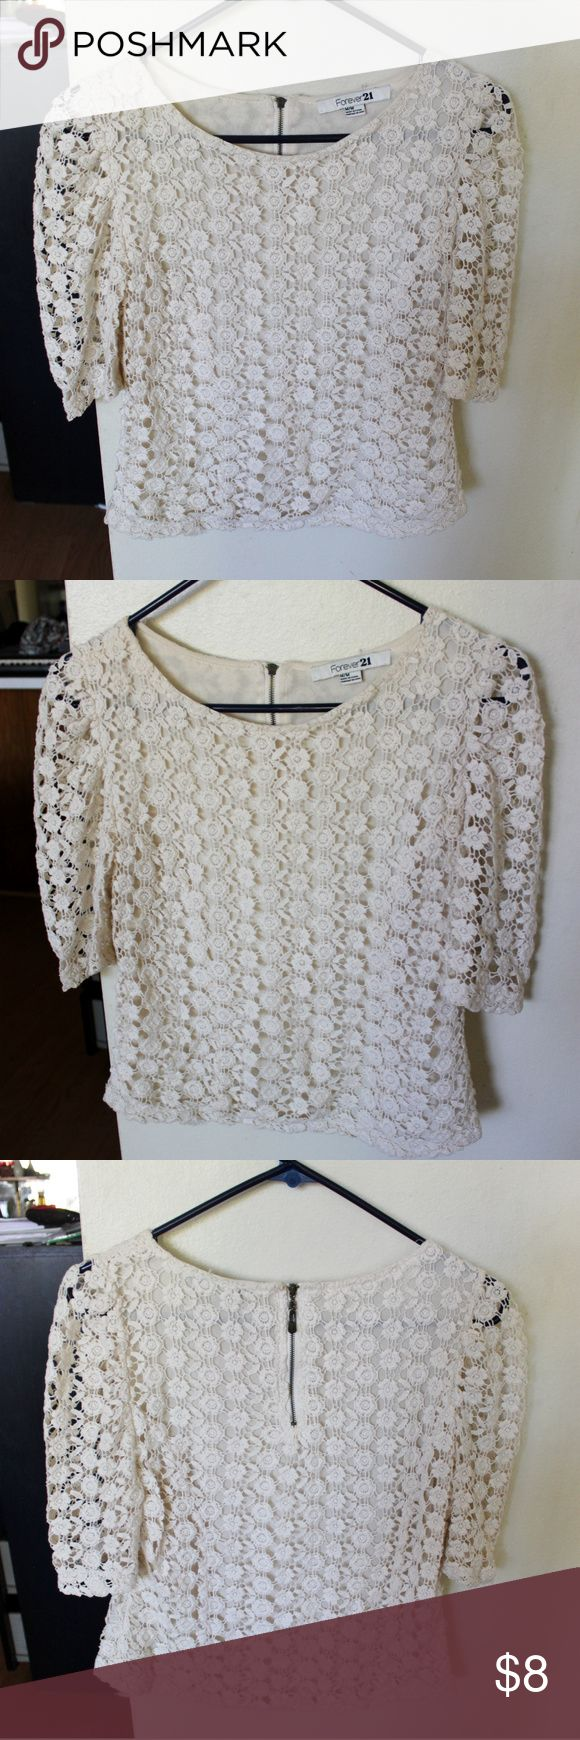 """Forever 21 Cream Floral Crochet Short Sleeve Top A cute Forever 21 cream crochet blouse in a size medium. Is lined underneath except on the sleeves and has an all-over floral crochet design. Is slightly see-through. Fits slightly cropped, about hip length. Armpit to armpit: 16.5"""", length: 19"""". Forever 21 Tops Blouses"""